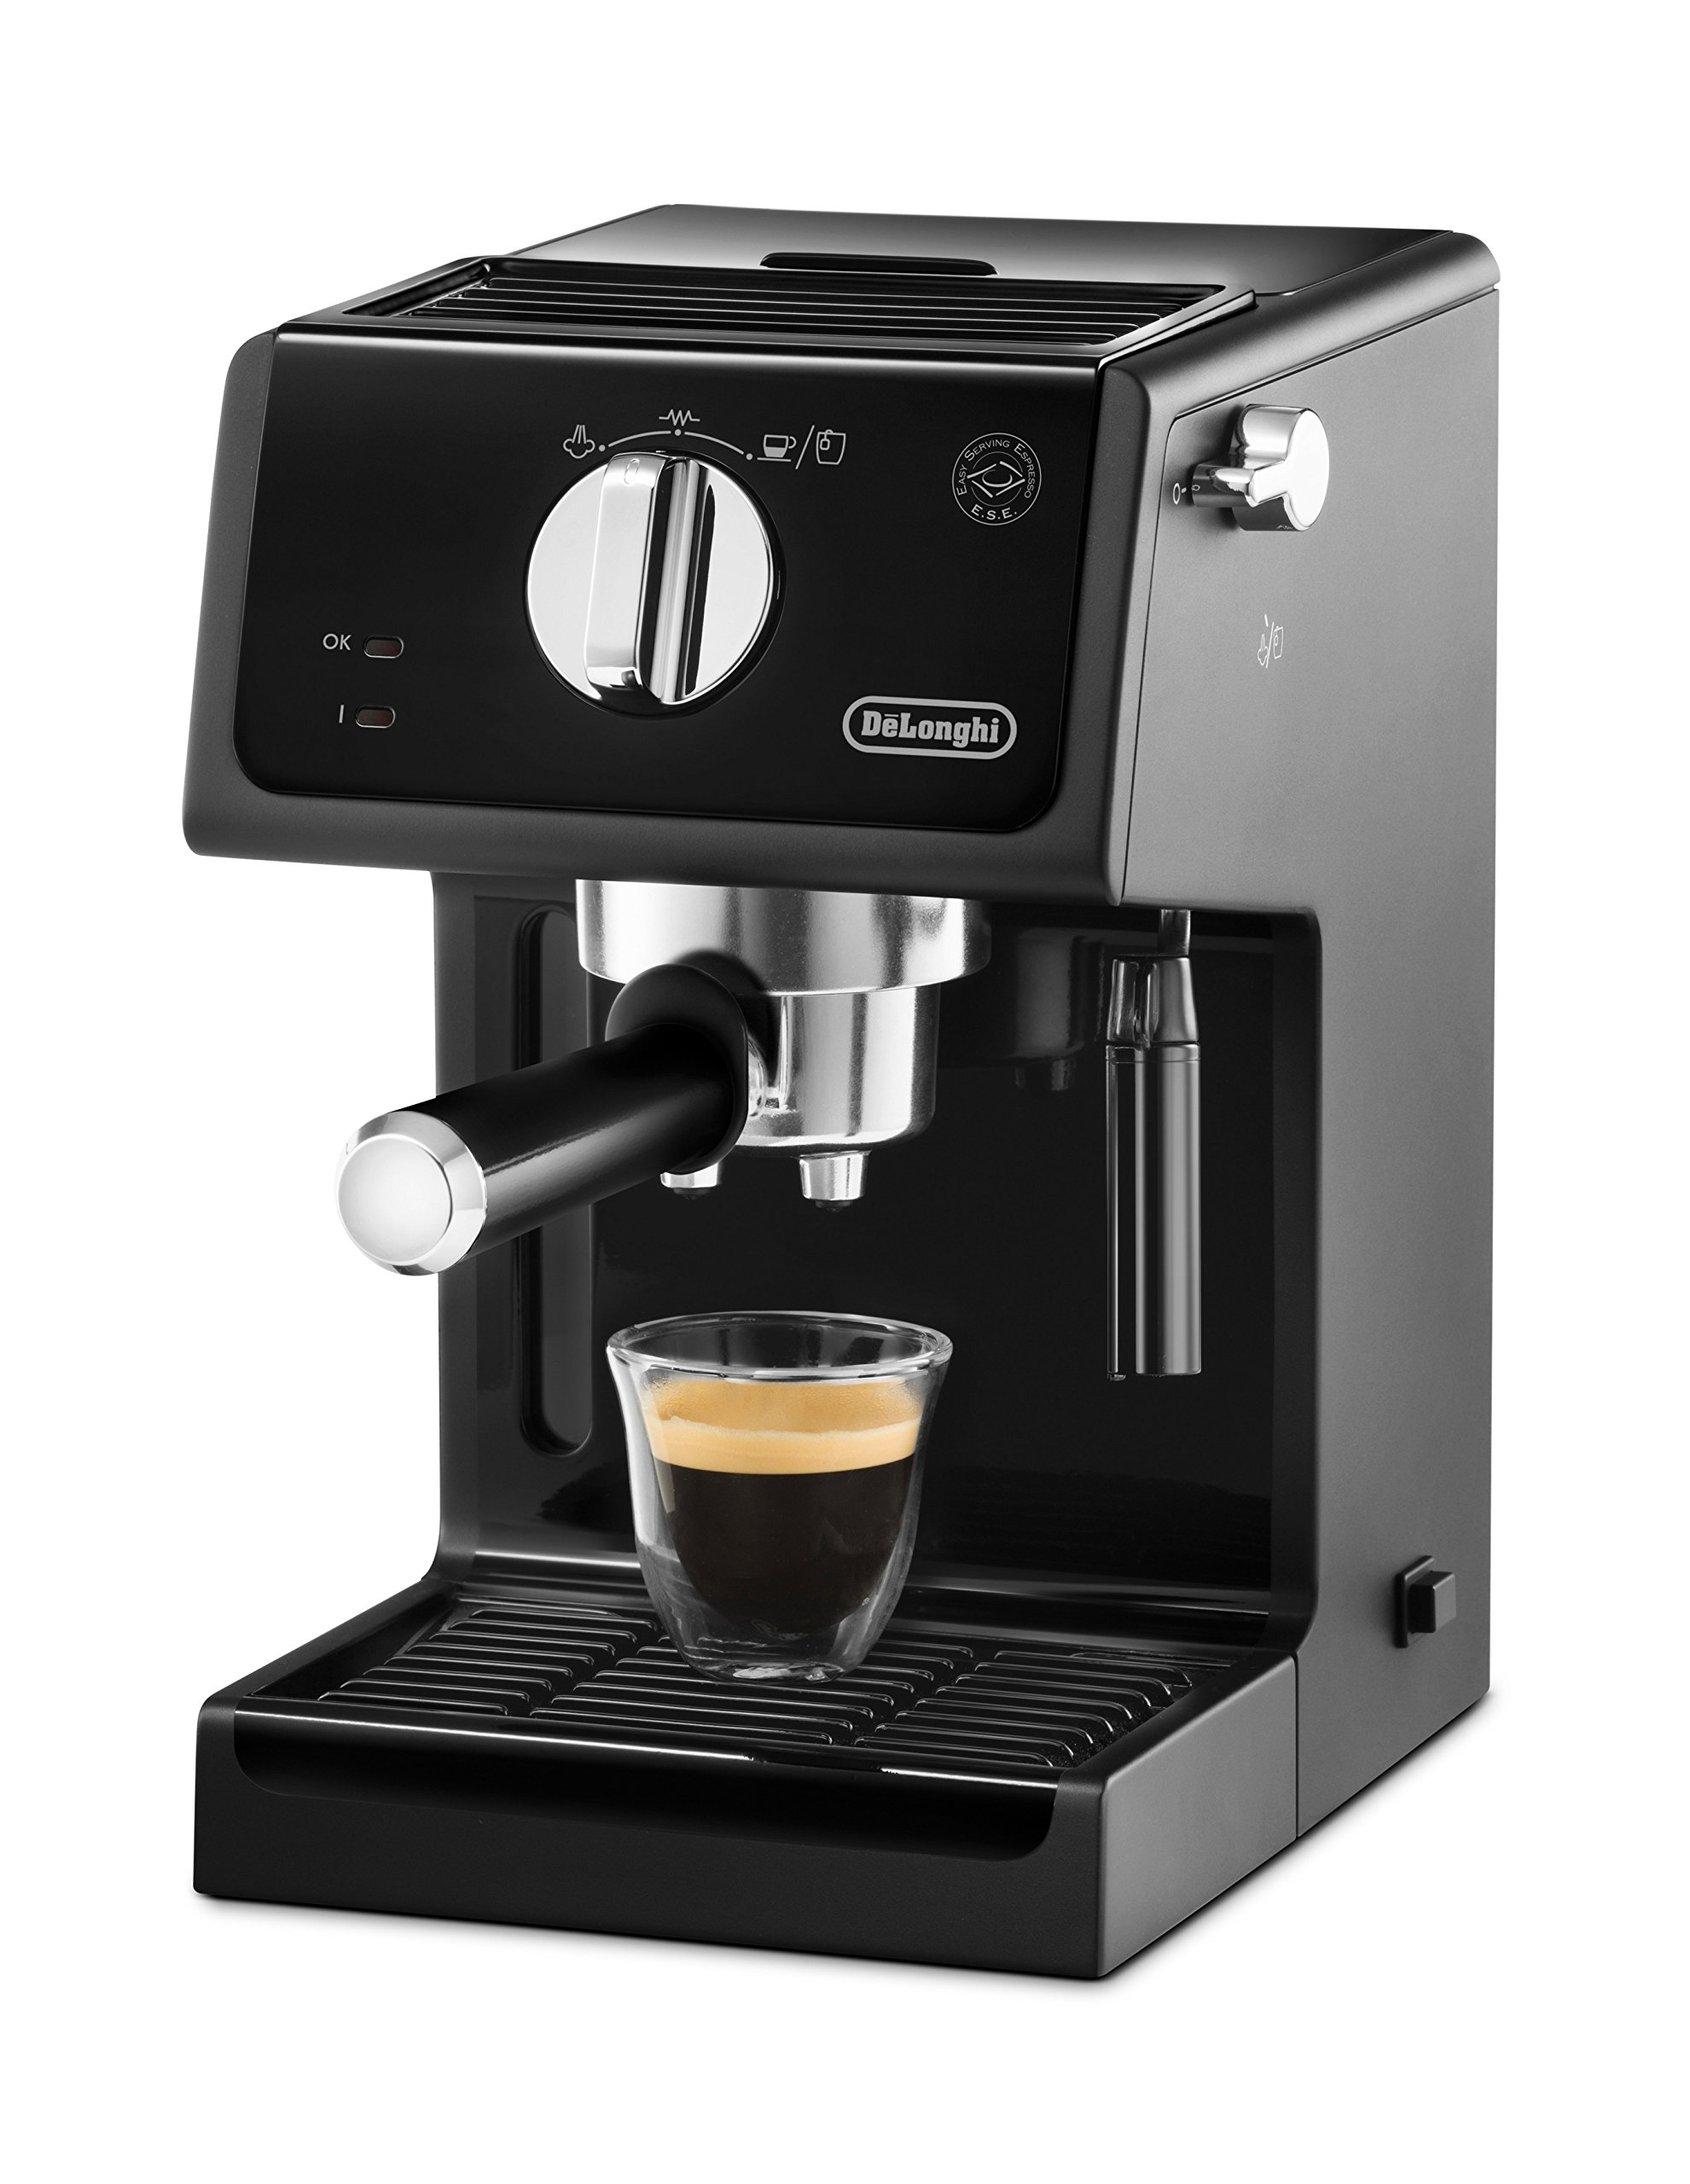 DeLonghi ECP31.21 Italian Traditional Espresso Coffee Maker Black eBay